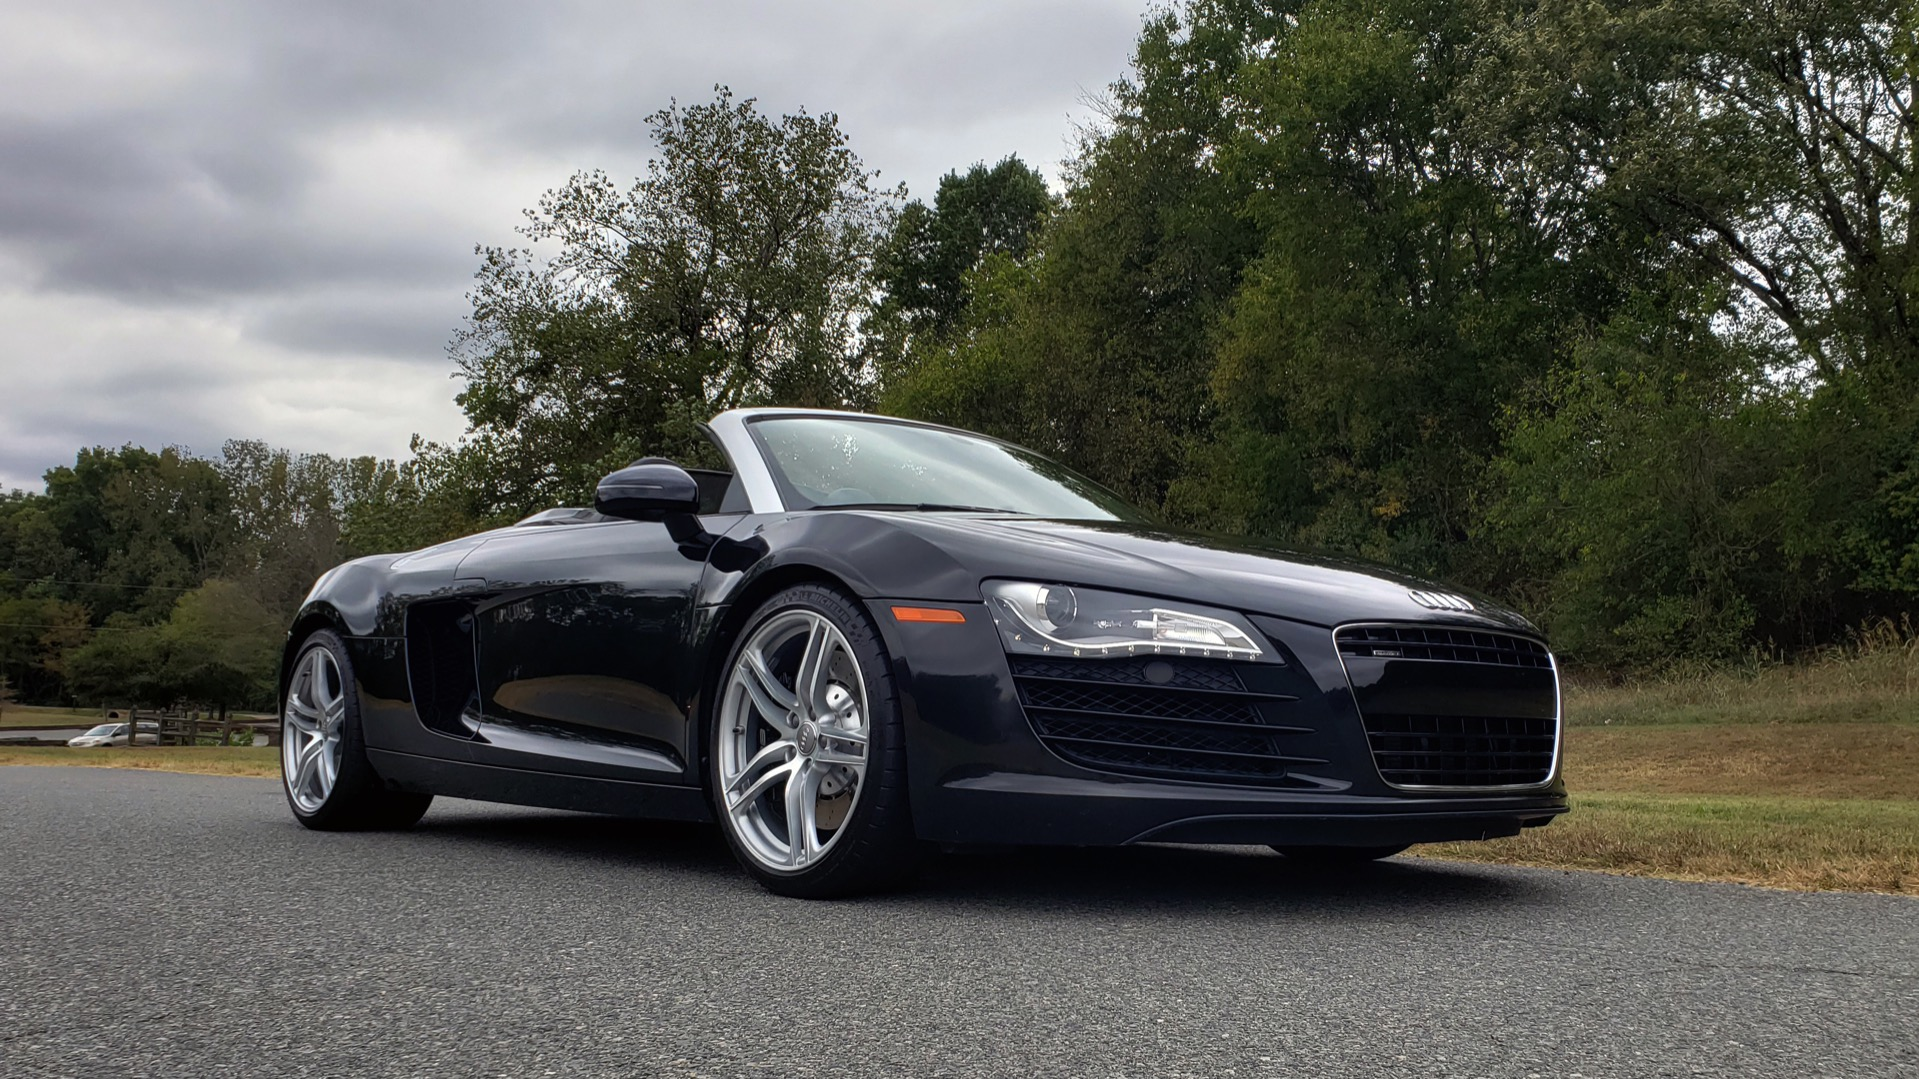 Used 2011 Audi R8 4.2L SPYDER QUATTRO / NAV / 19 IN WHEELS / LOW MILES for sale Sold at Formula Imports in Charlotte NC 28227 22